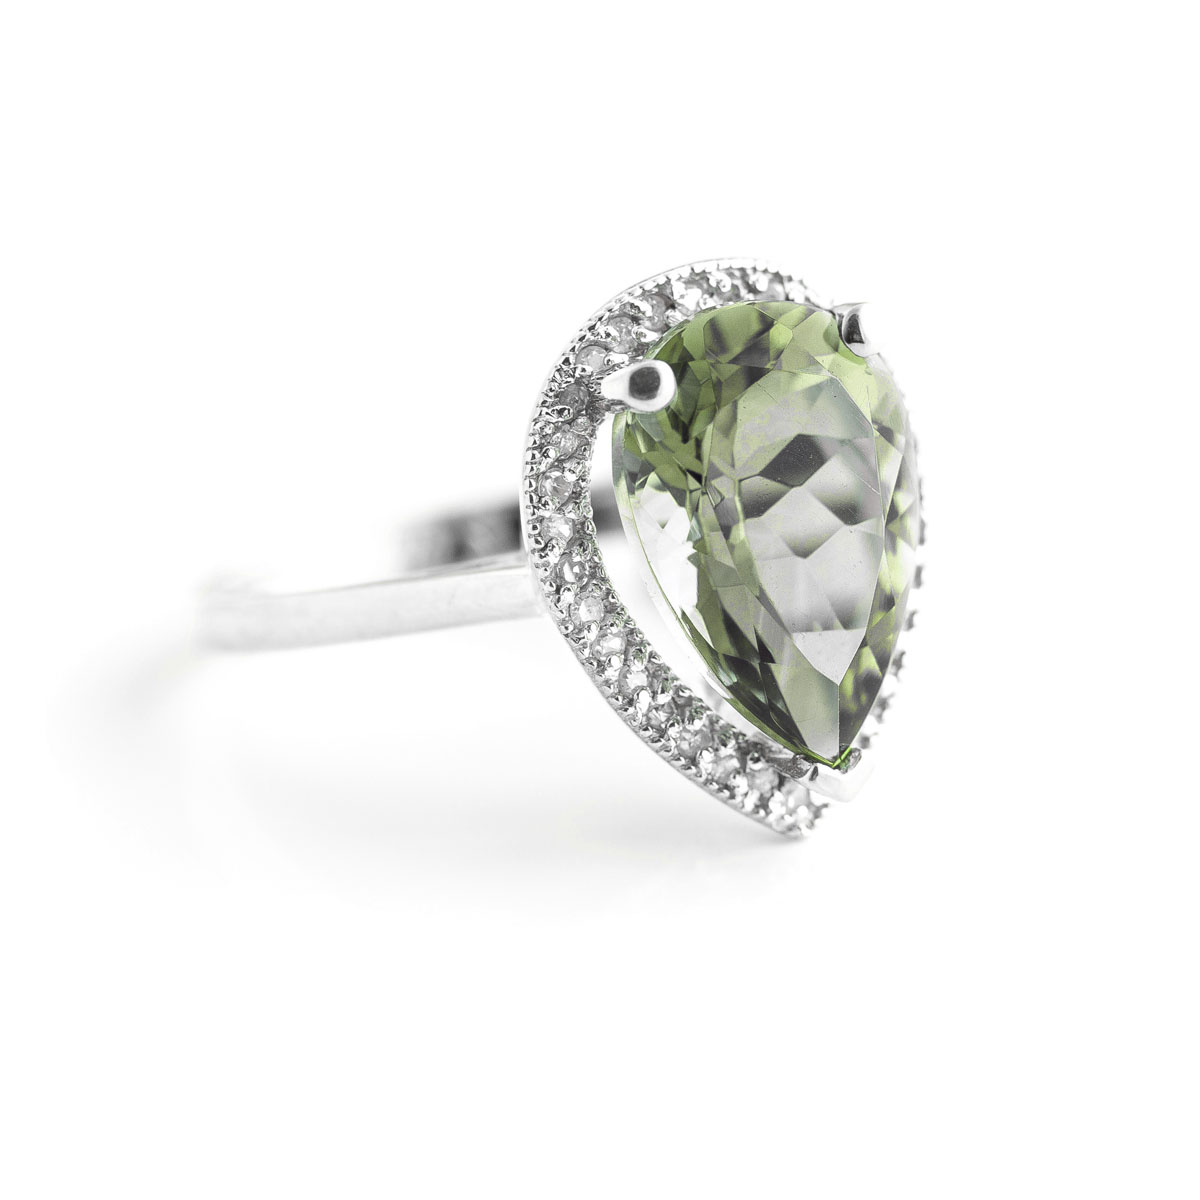 Green Amethyst Halo Ring 3.41 ctw in 9ct White Gold